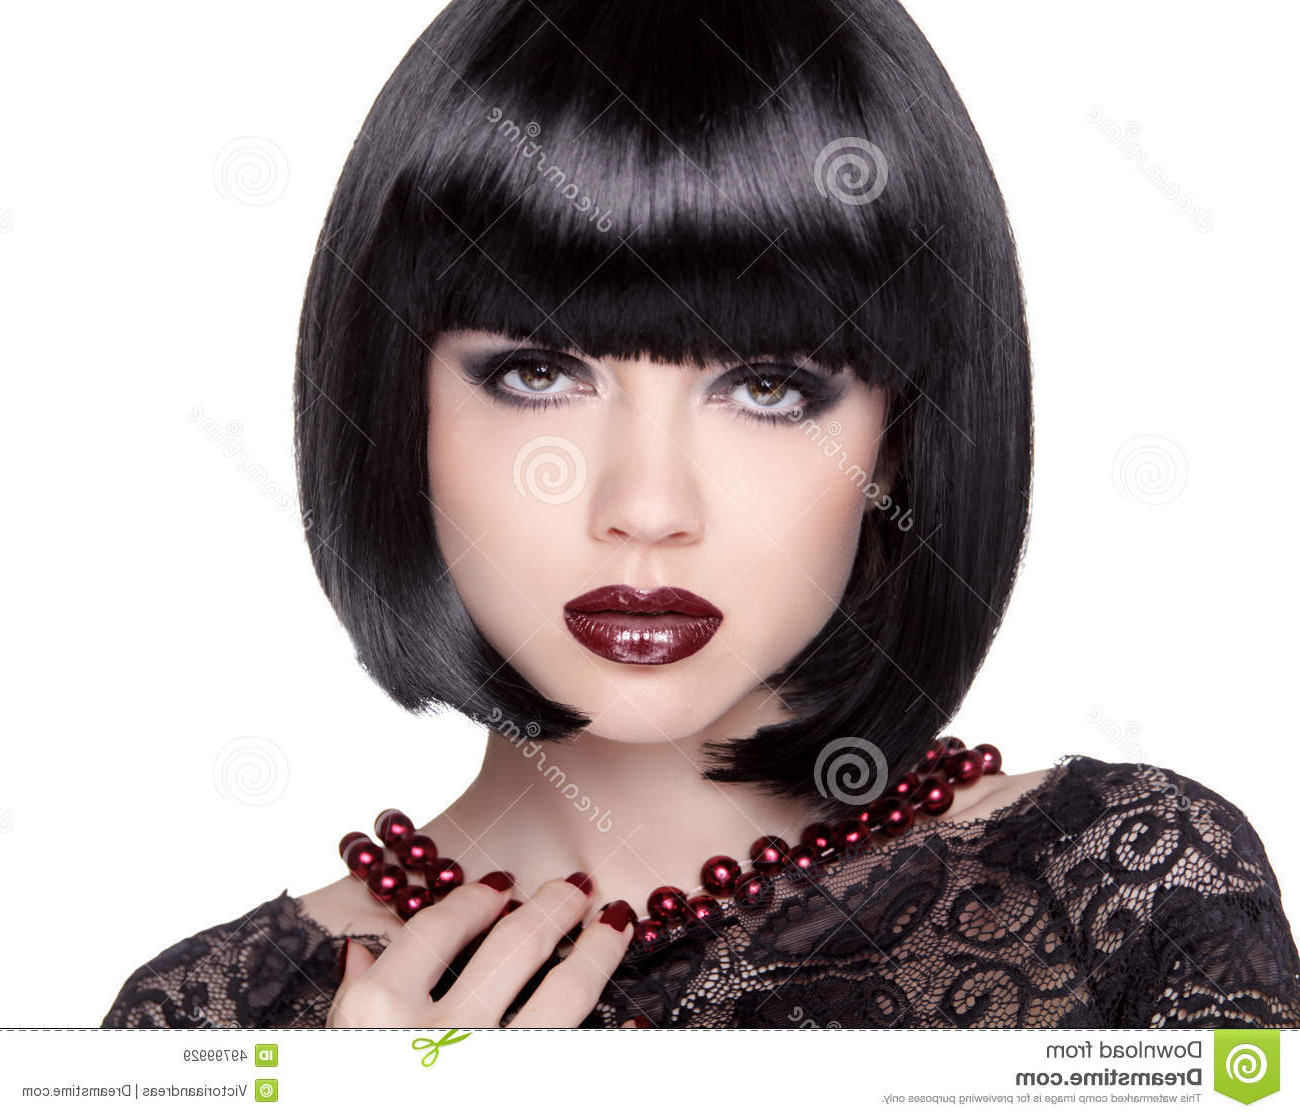 Fashion Brunette Girl Model With Black Bob Hairstyle. Lady Vamp with Black Bob Short Hairstyles